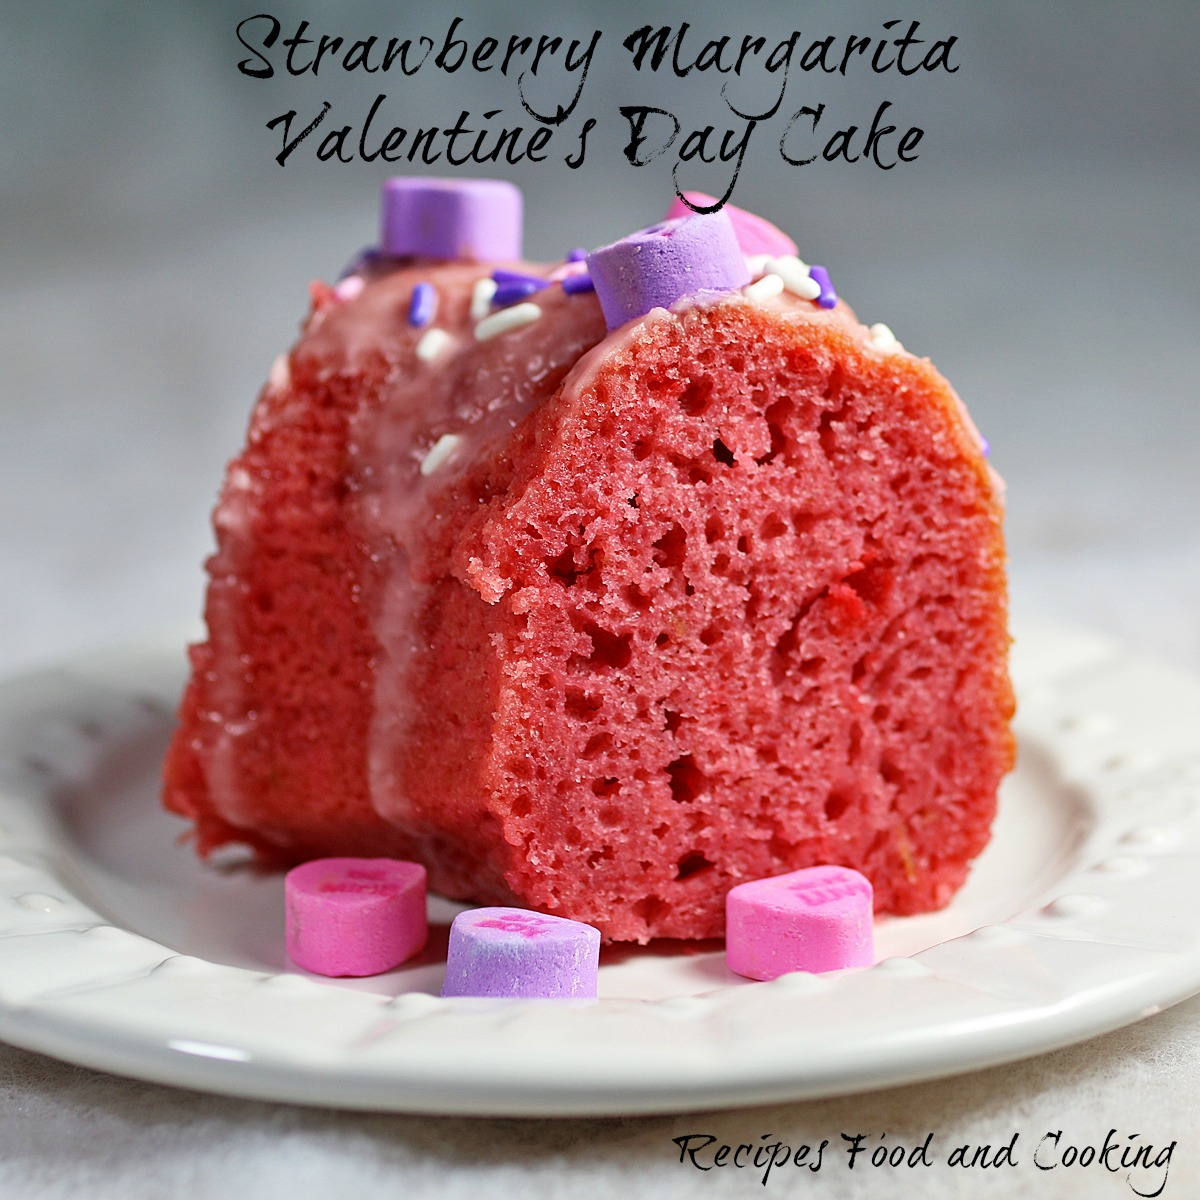 Strawberry Margarita Valentine's Day Cake